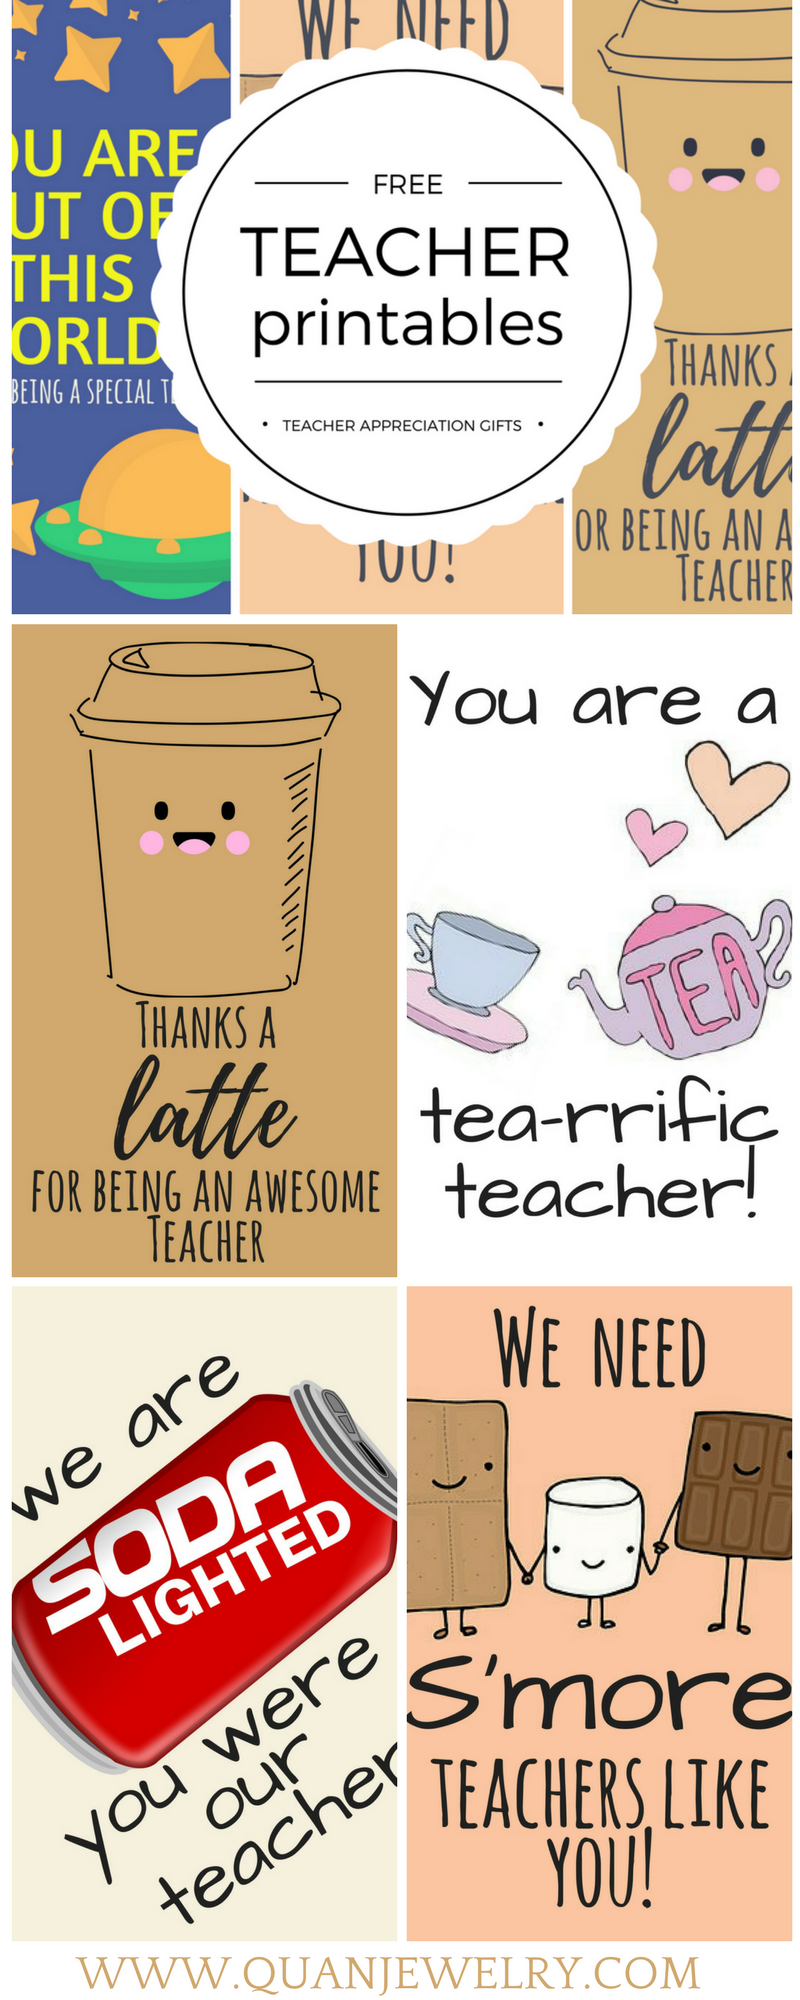 Free Teacher Appreciation Vouchers Plus strategies for Creating Your Own